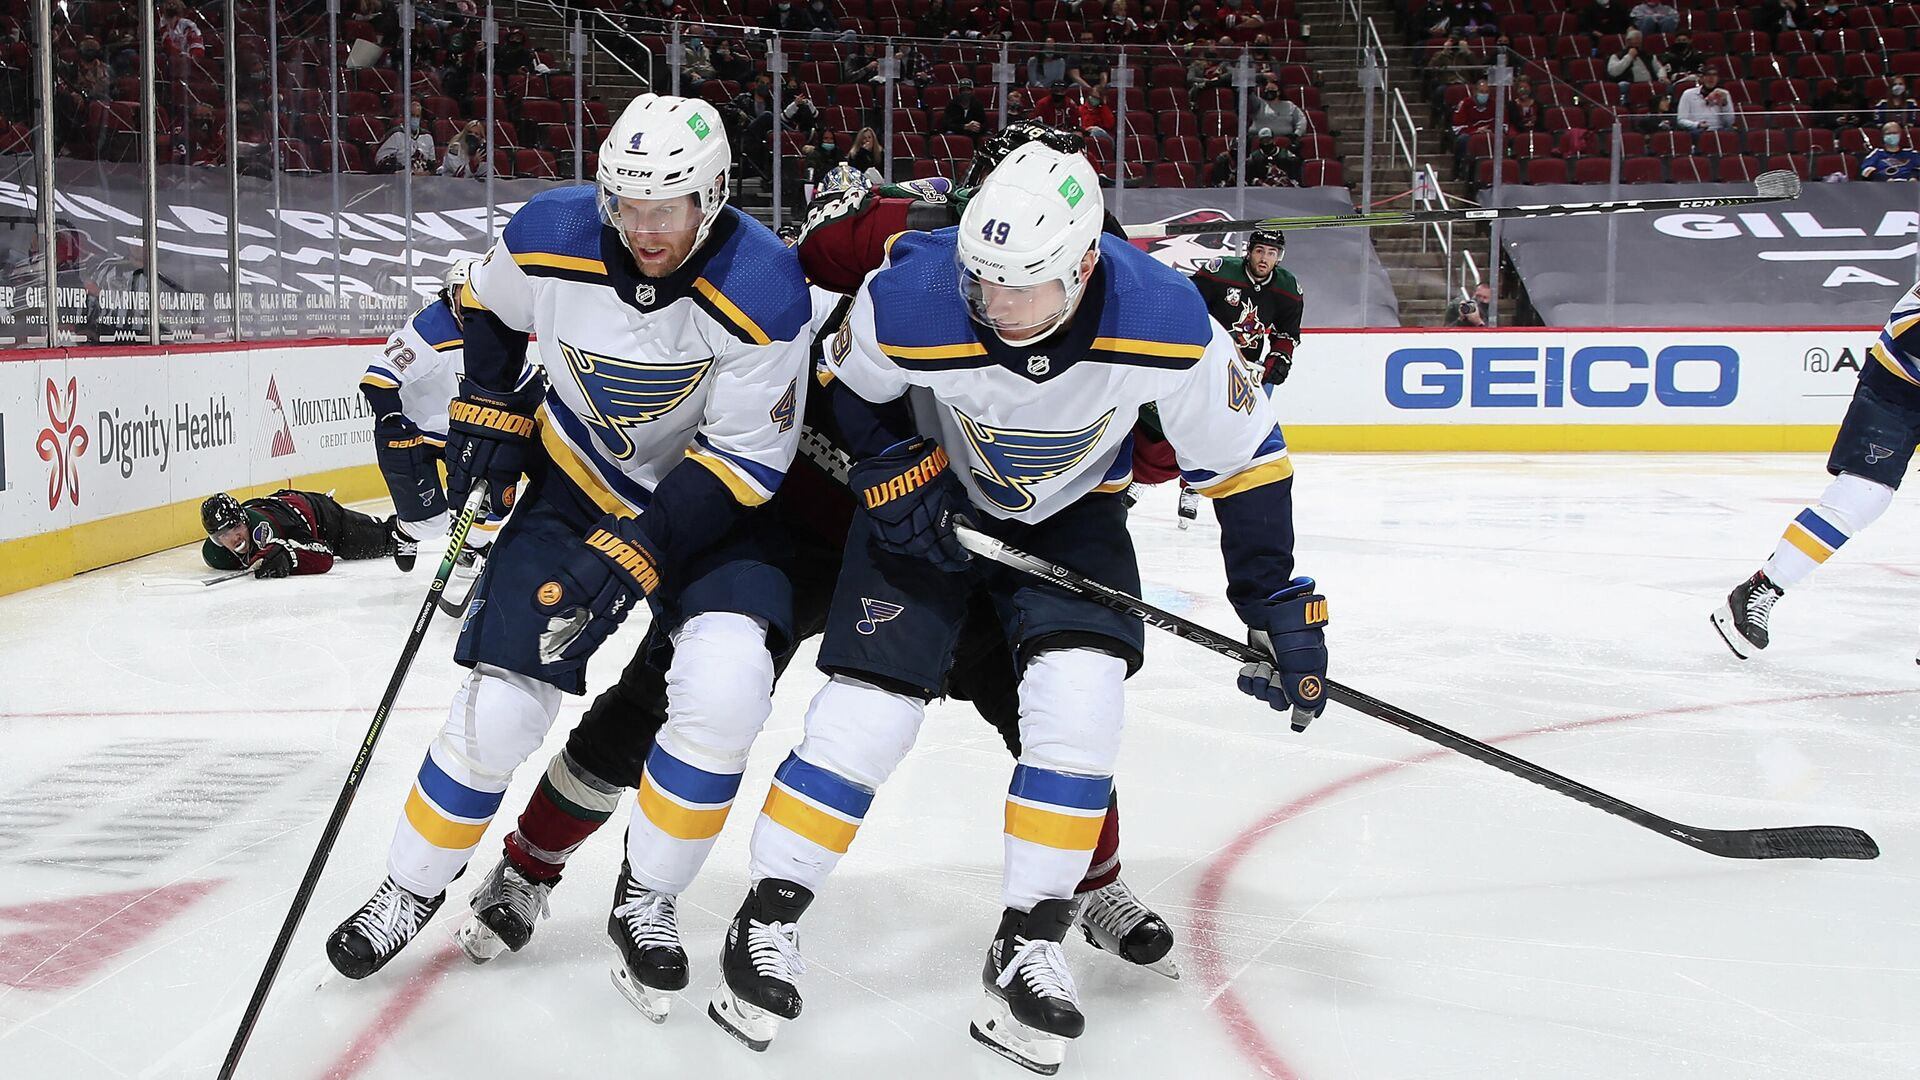 GLENDALE, ARIZONA - FEBRUARY 15: Carl Gunnarsson #4 and Ivan Barbashev #49 of the St. Louis Blues controls the puck during the third period of the NHL game against the Arizona Coyotes at Gila River Arena on February 15, 2021 in Glendale, Arizona. The Coyotes defeated the Blues 1-0.   Christian Petersen/Getty Images/AFP (Photo by Christian Petersen / GETTY IMAGES NORTH AMERICA / Getty Images via AFP) - РИА Новости, 1920, 23.06.2021